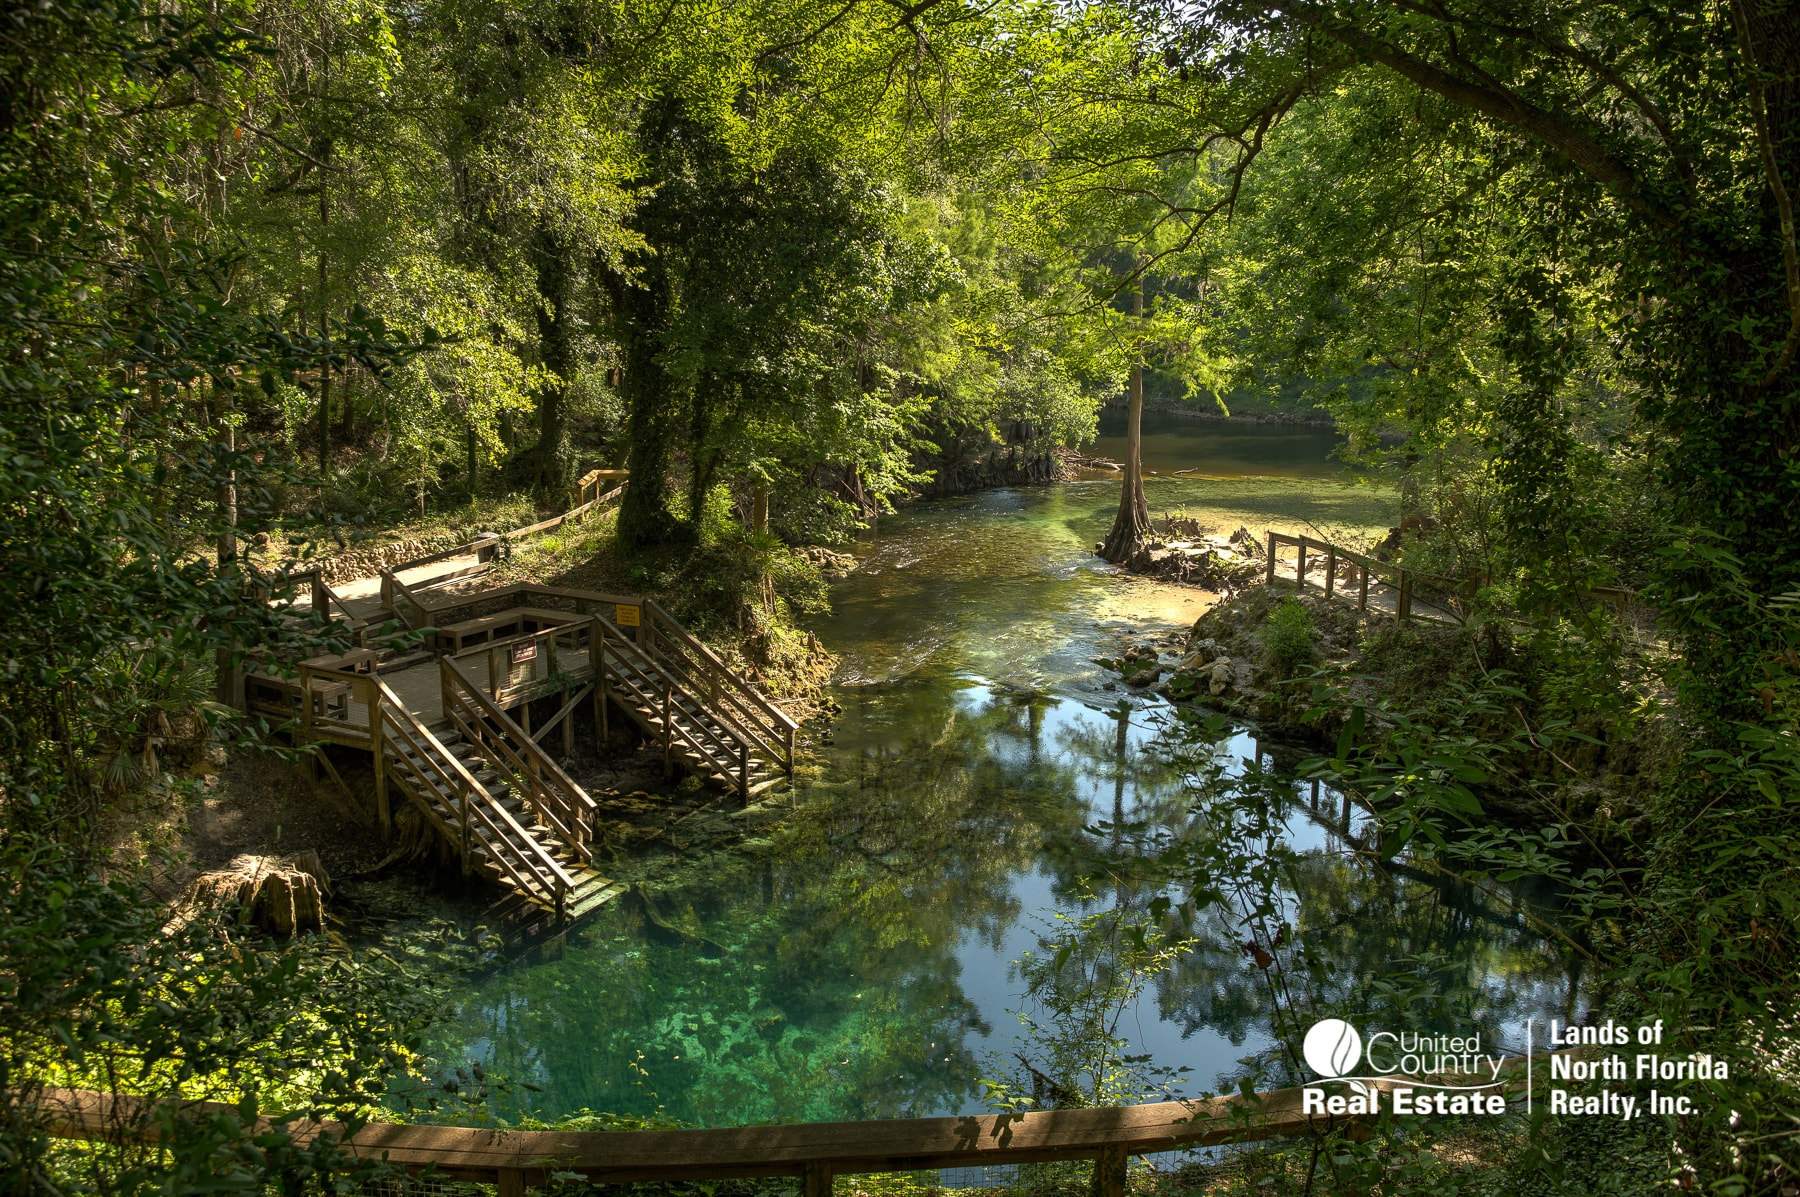 An elevated view looking down towards Madison Blue Springs. Entry steps to the left, and a board walk way to the right. The blue water flows out and merges with the Withlacoochee River.